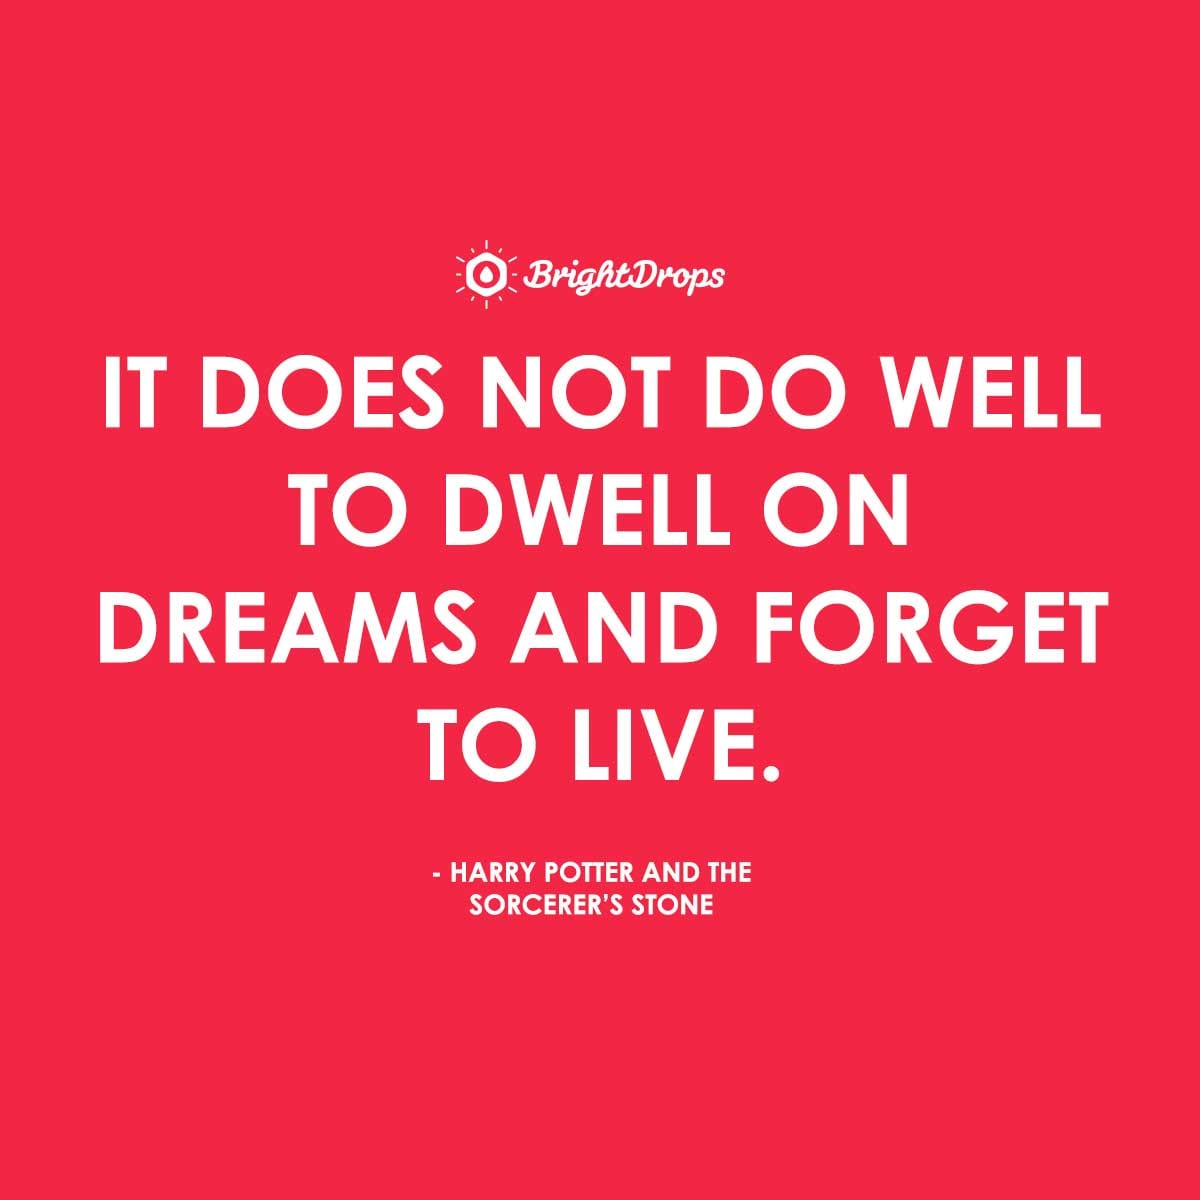 It does not do well to dwell on dreams and forget to live. - Harry Potter and the Sorcerer's Stone